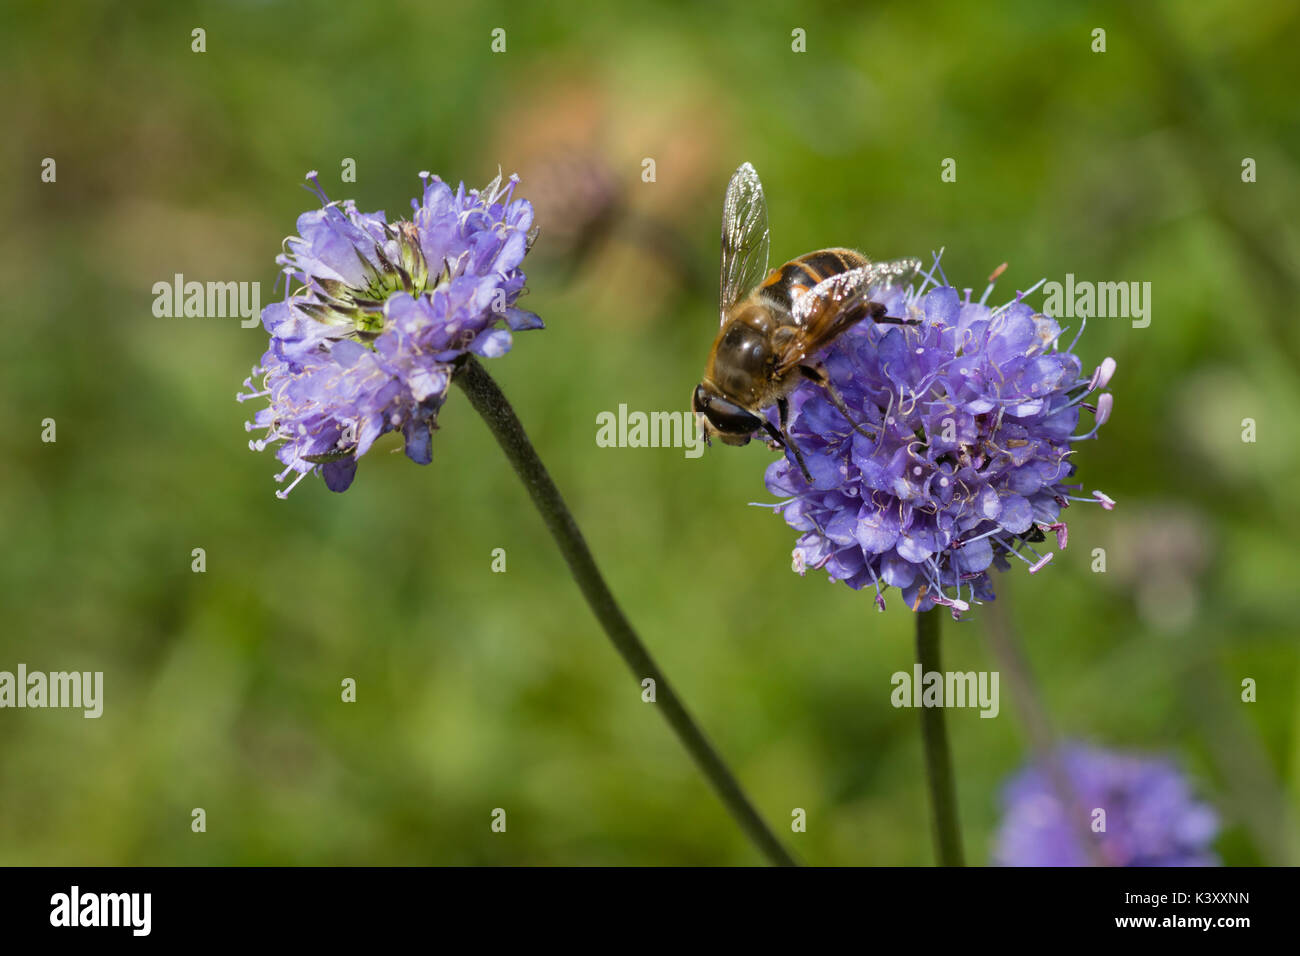 Pincushion blue flower heads of the UK wildflower Devil's bit scabious, Succisa pratensis, with an Eristalis pertinax hoverfly feeding - Stock Image